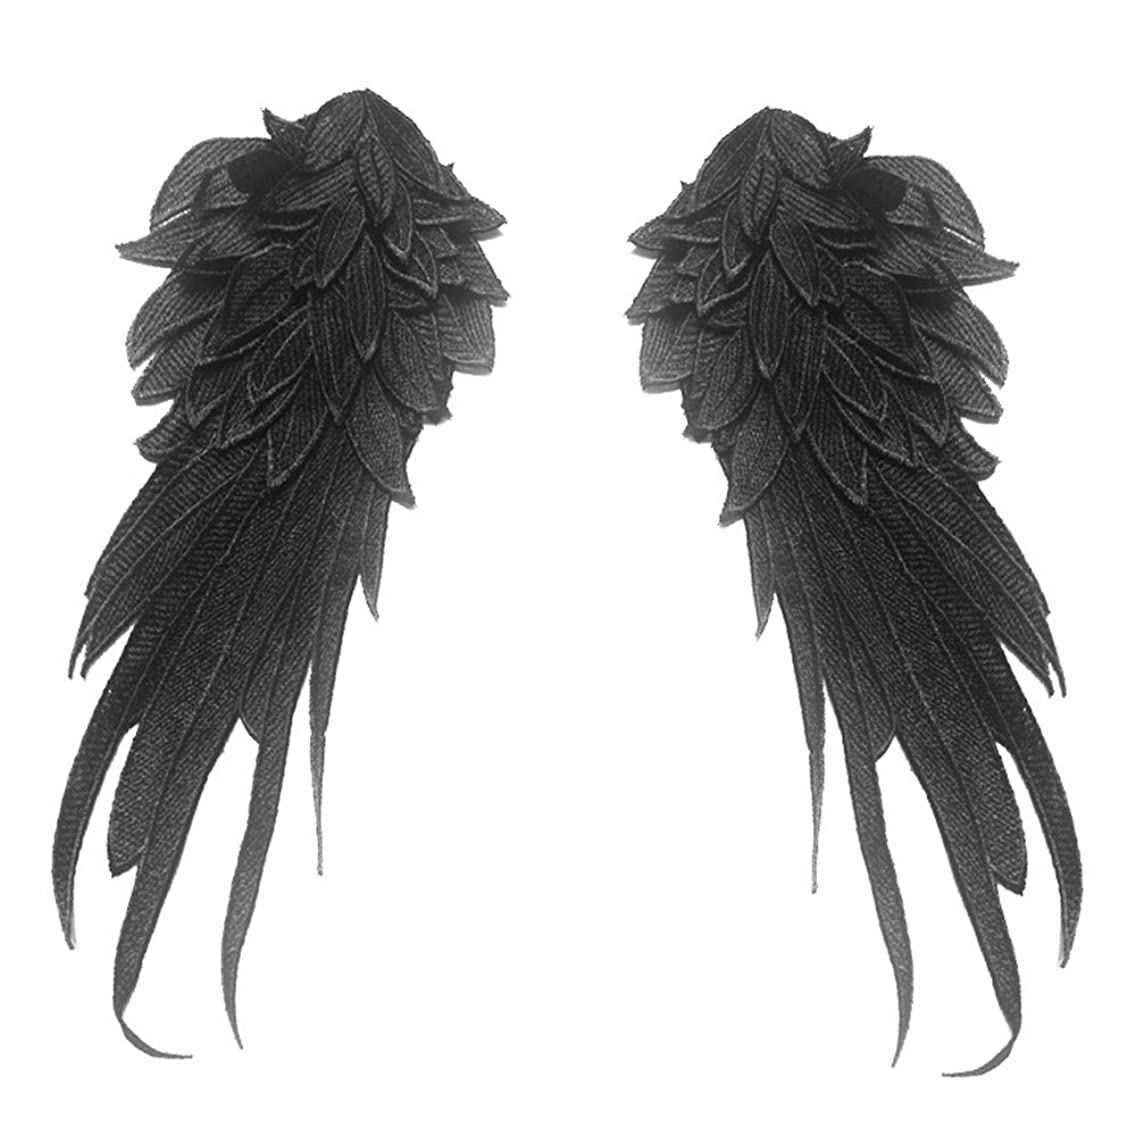 1Pair Black Embroidered Angel Wings 15.8x6.2 inch (Black-Large)